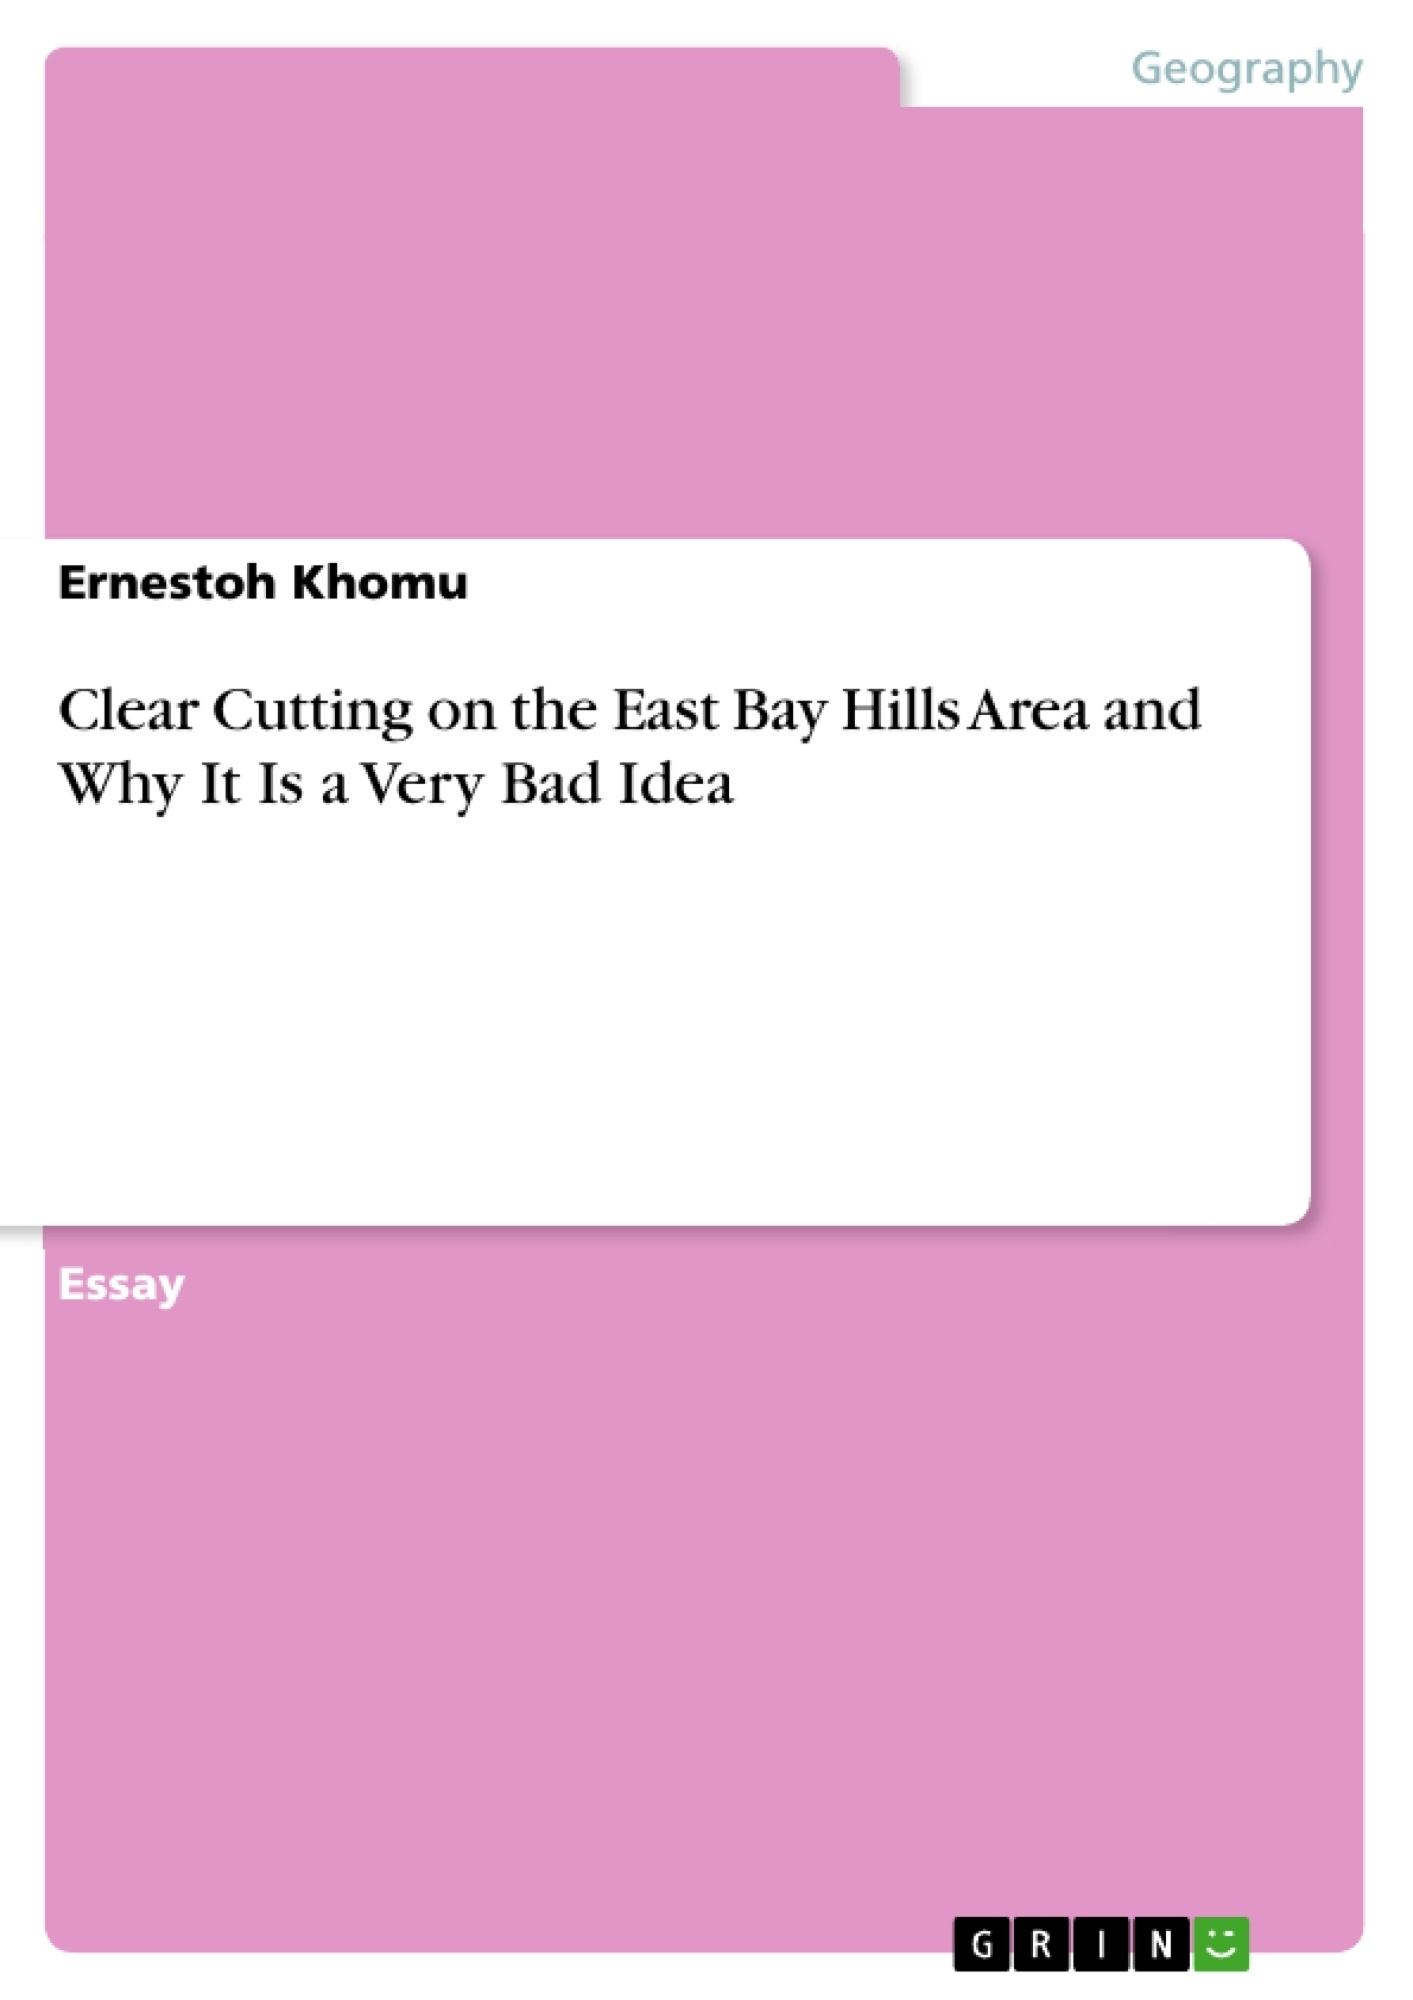 Title: Clear Cutting on the East Bay Hills Area and Why It Is a Very Bad Idea